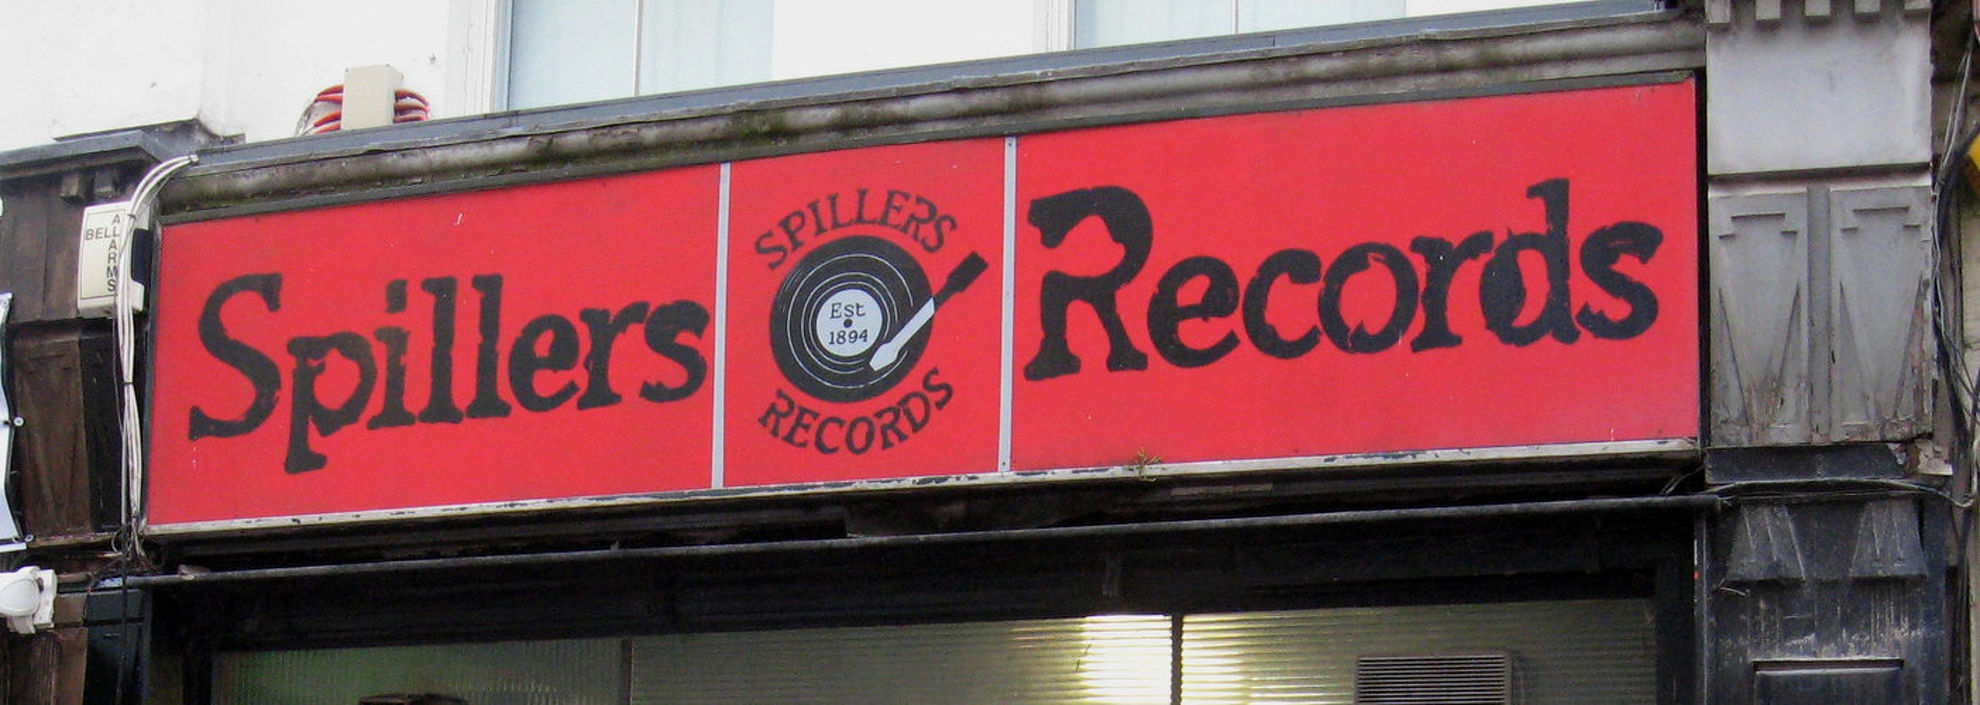 Explore records